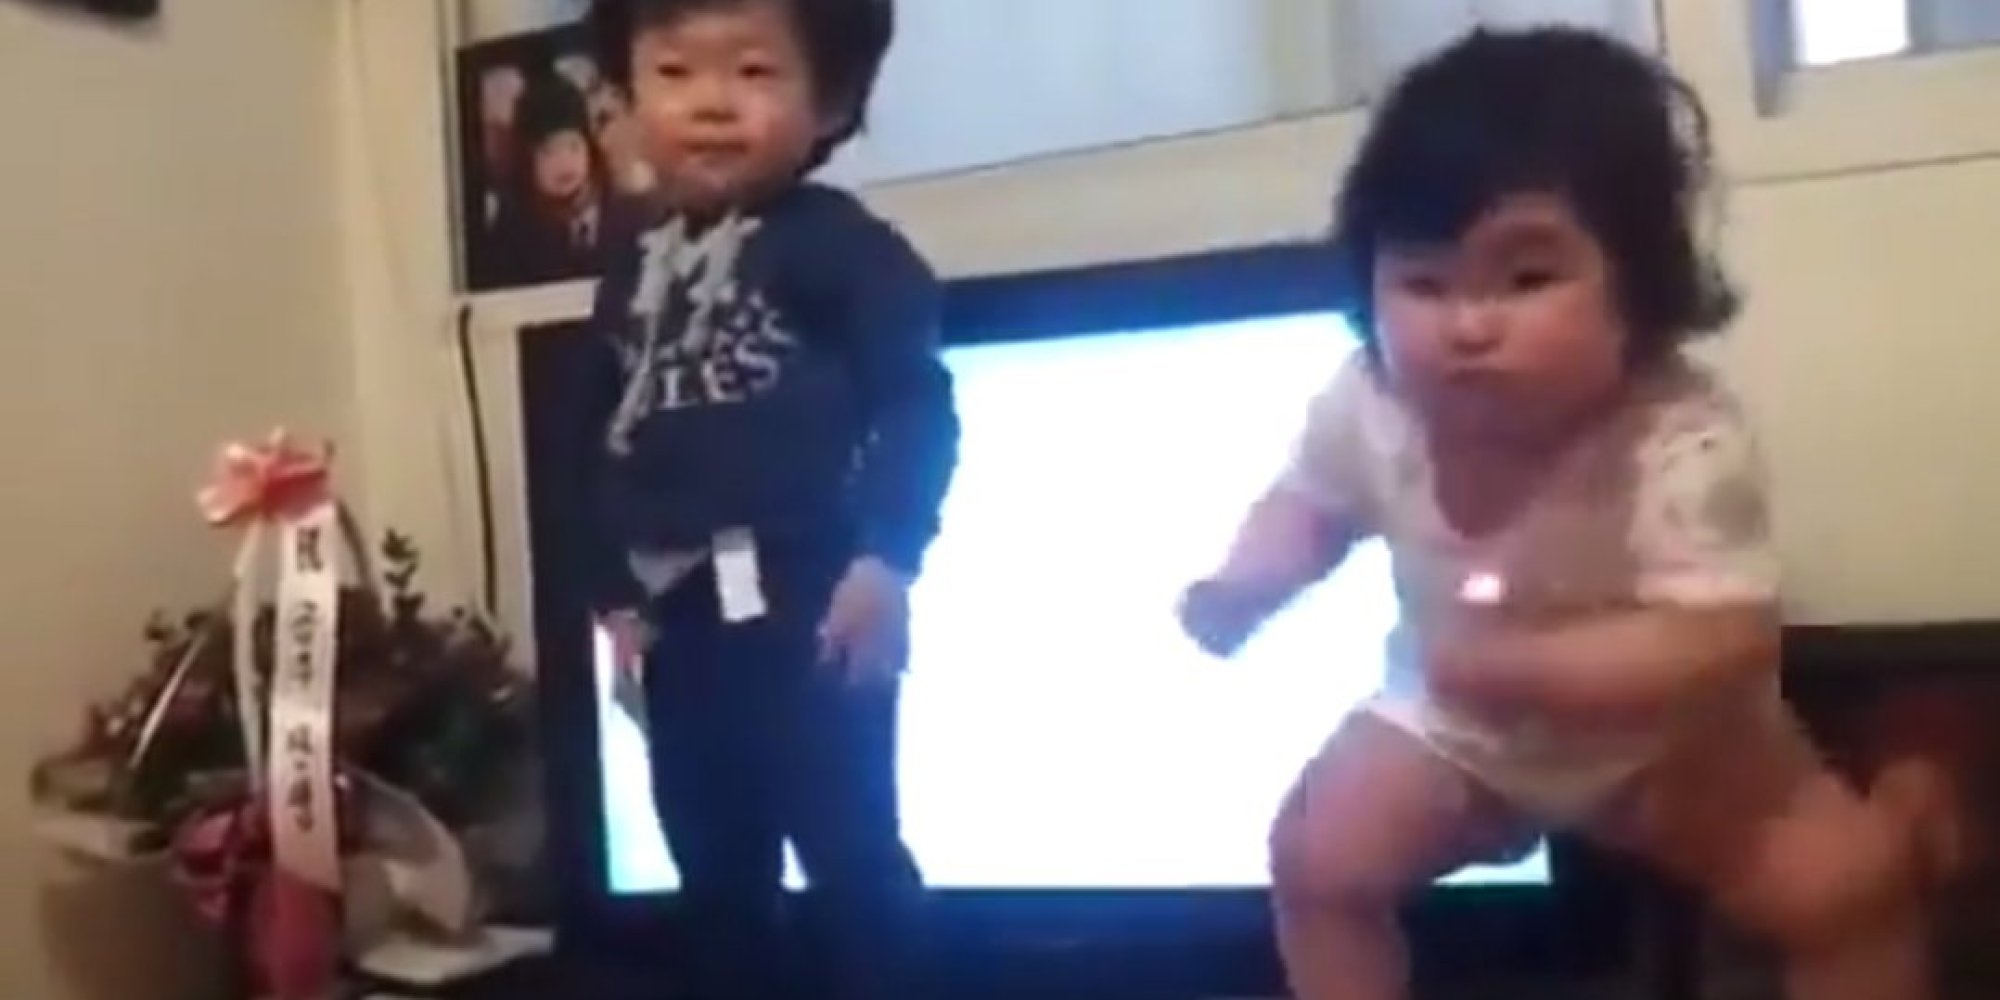 This chubby toddler is the best dancer the internet has ever seen